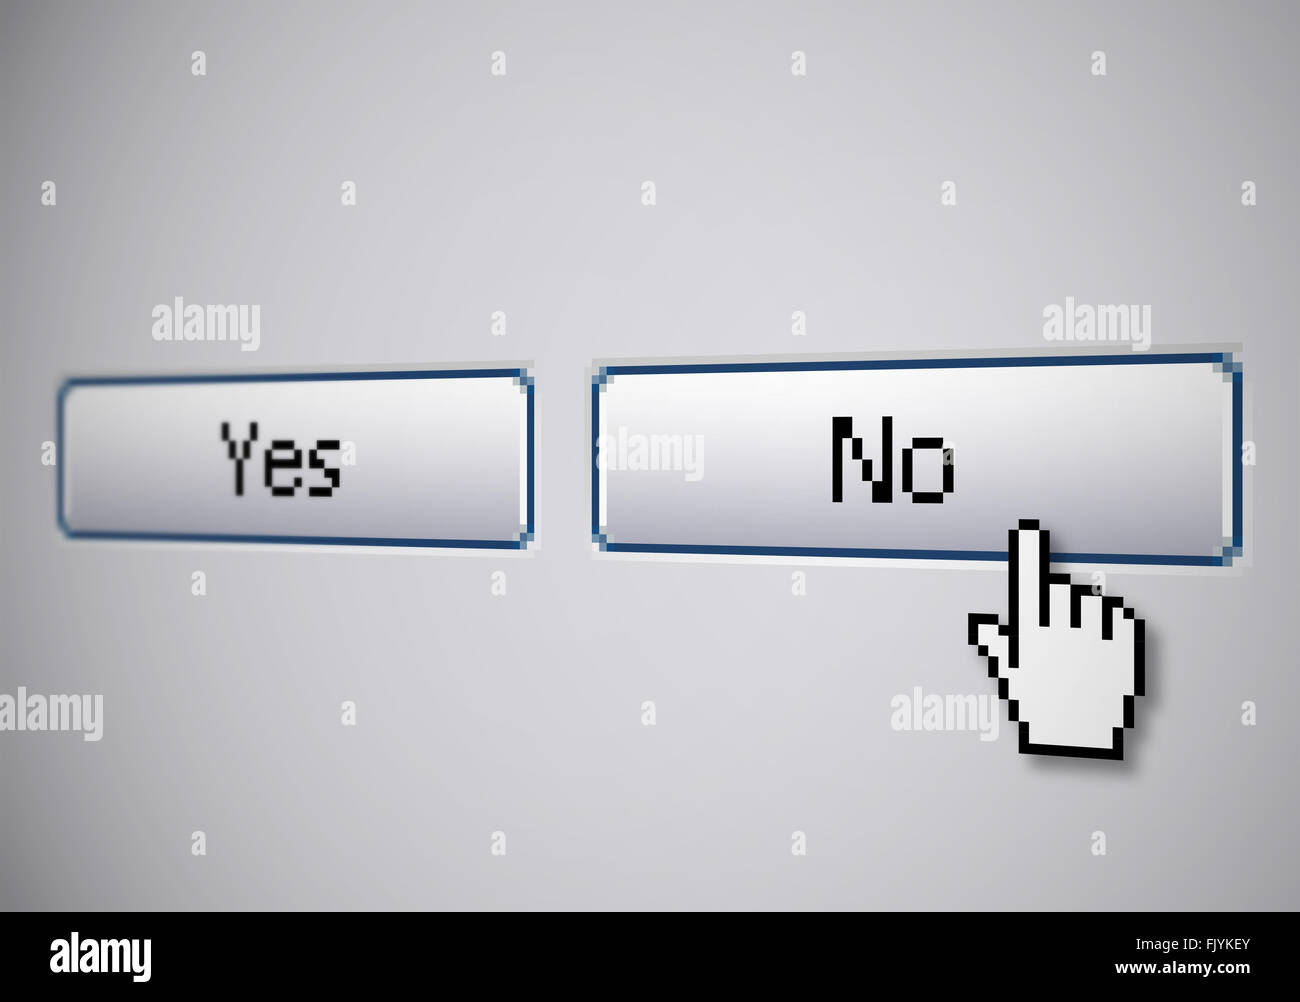 No Yes buttons - Stock Image